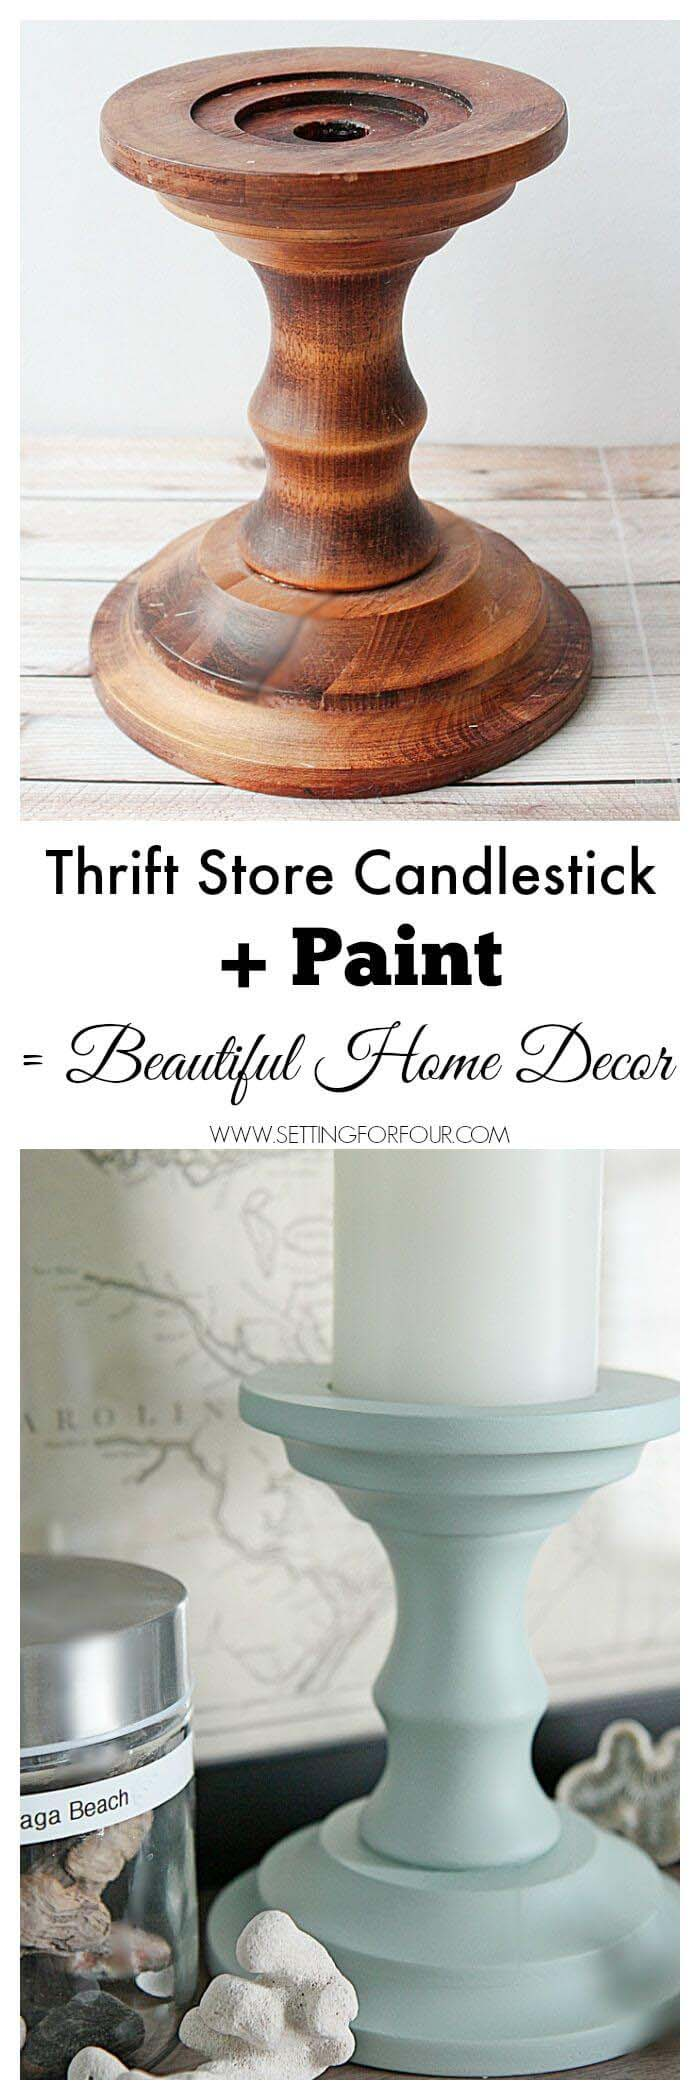 Painted Candlesticks #dollarstore #diy #homedecor #decorhomeideas